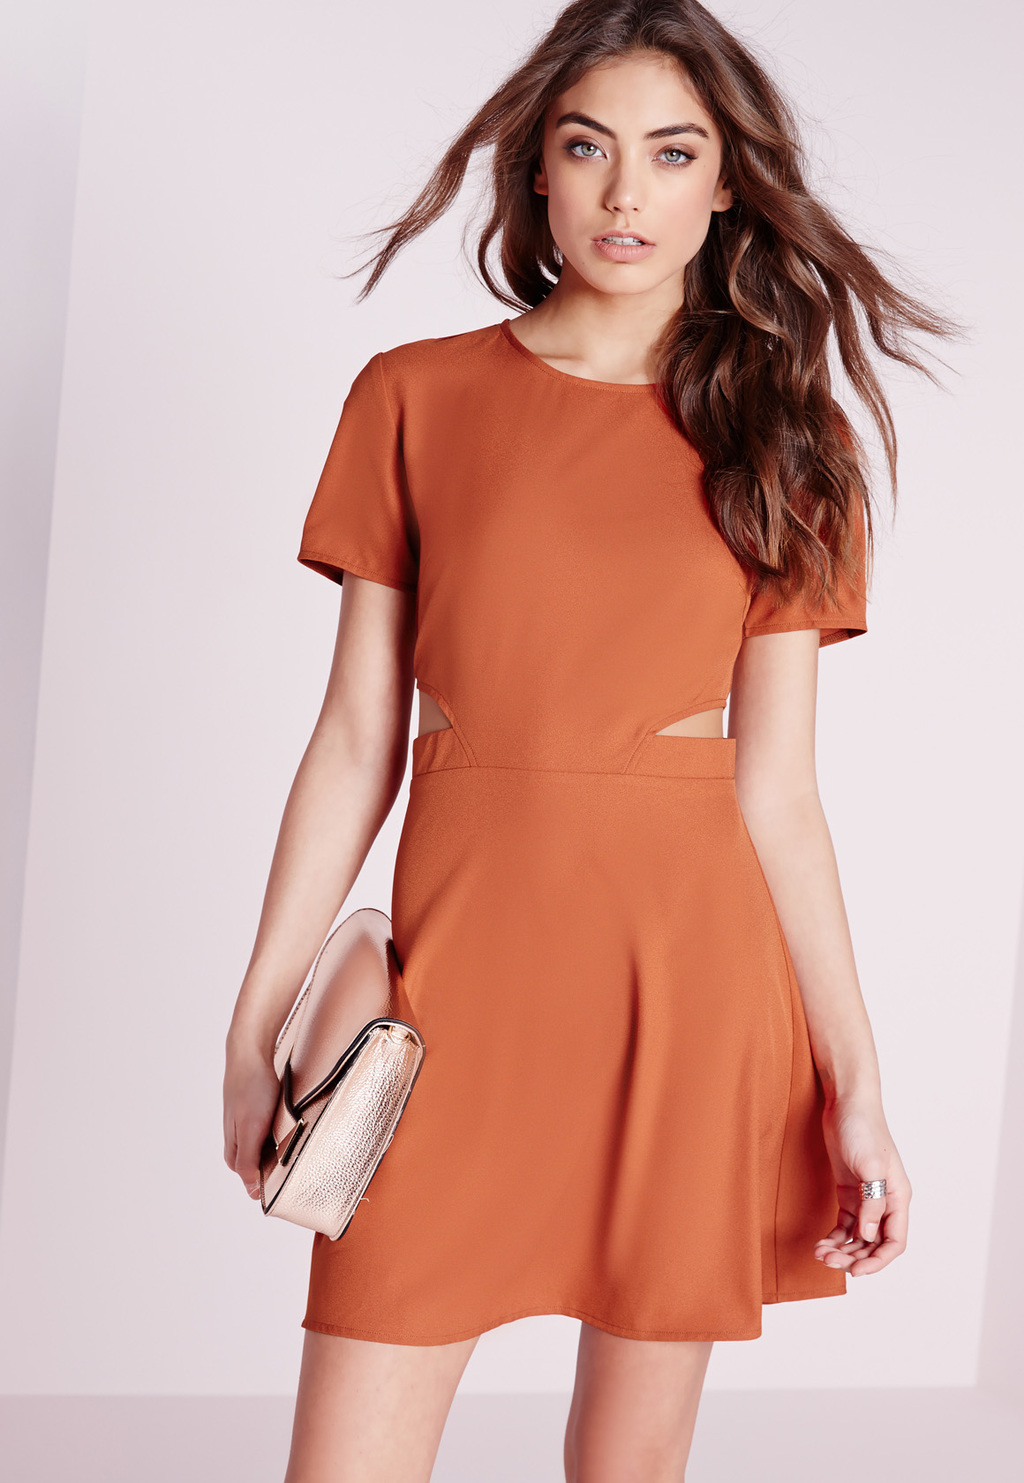 Short Sleeve Crepe Cut Out Waist Skater Dress Rust, Orange - length: mid thigh; pattern: plain; predominant colour: coral; occasions: casual; fit: fitted at waist & bust; style: fit & flare; fibres: polyester/polyamide - stretch; neckline: crew; waist detail: cut out detail; sleeve length: short sleeve; sleeve style: standard; pattern type: fabric; texture group: jersey - stretchy/drapey; season: s/s 2016; wardrobe: highlight